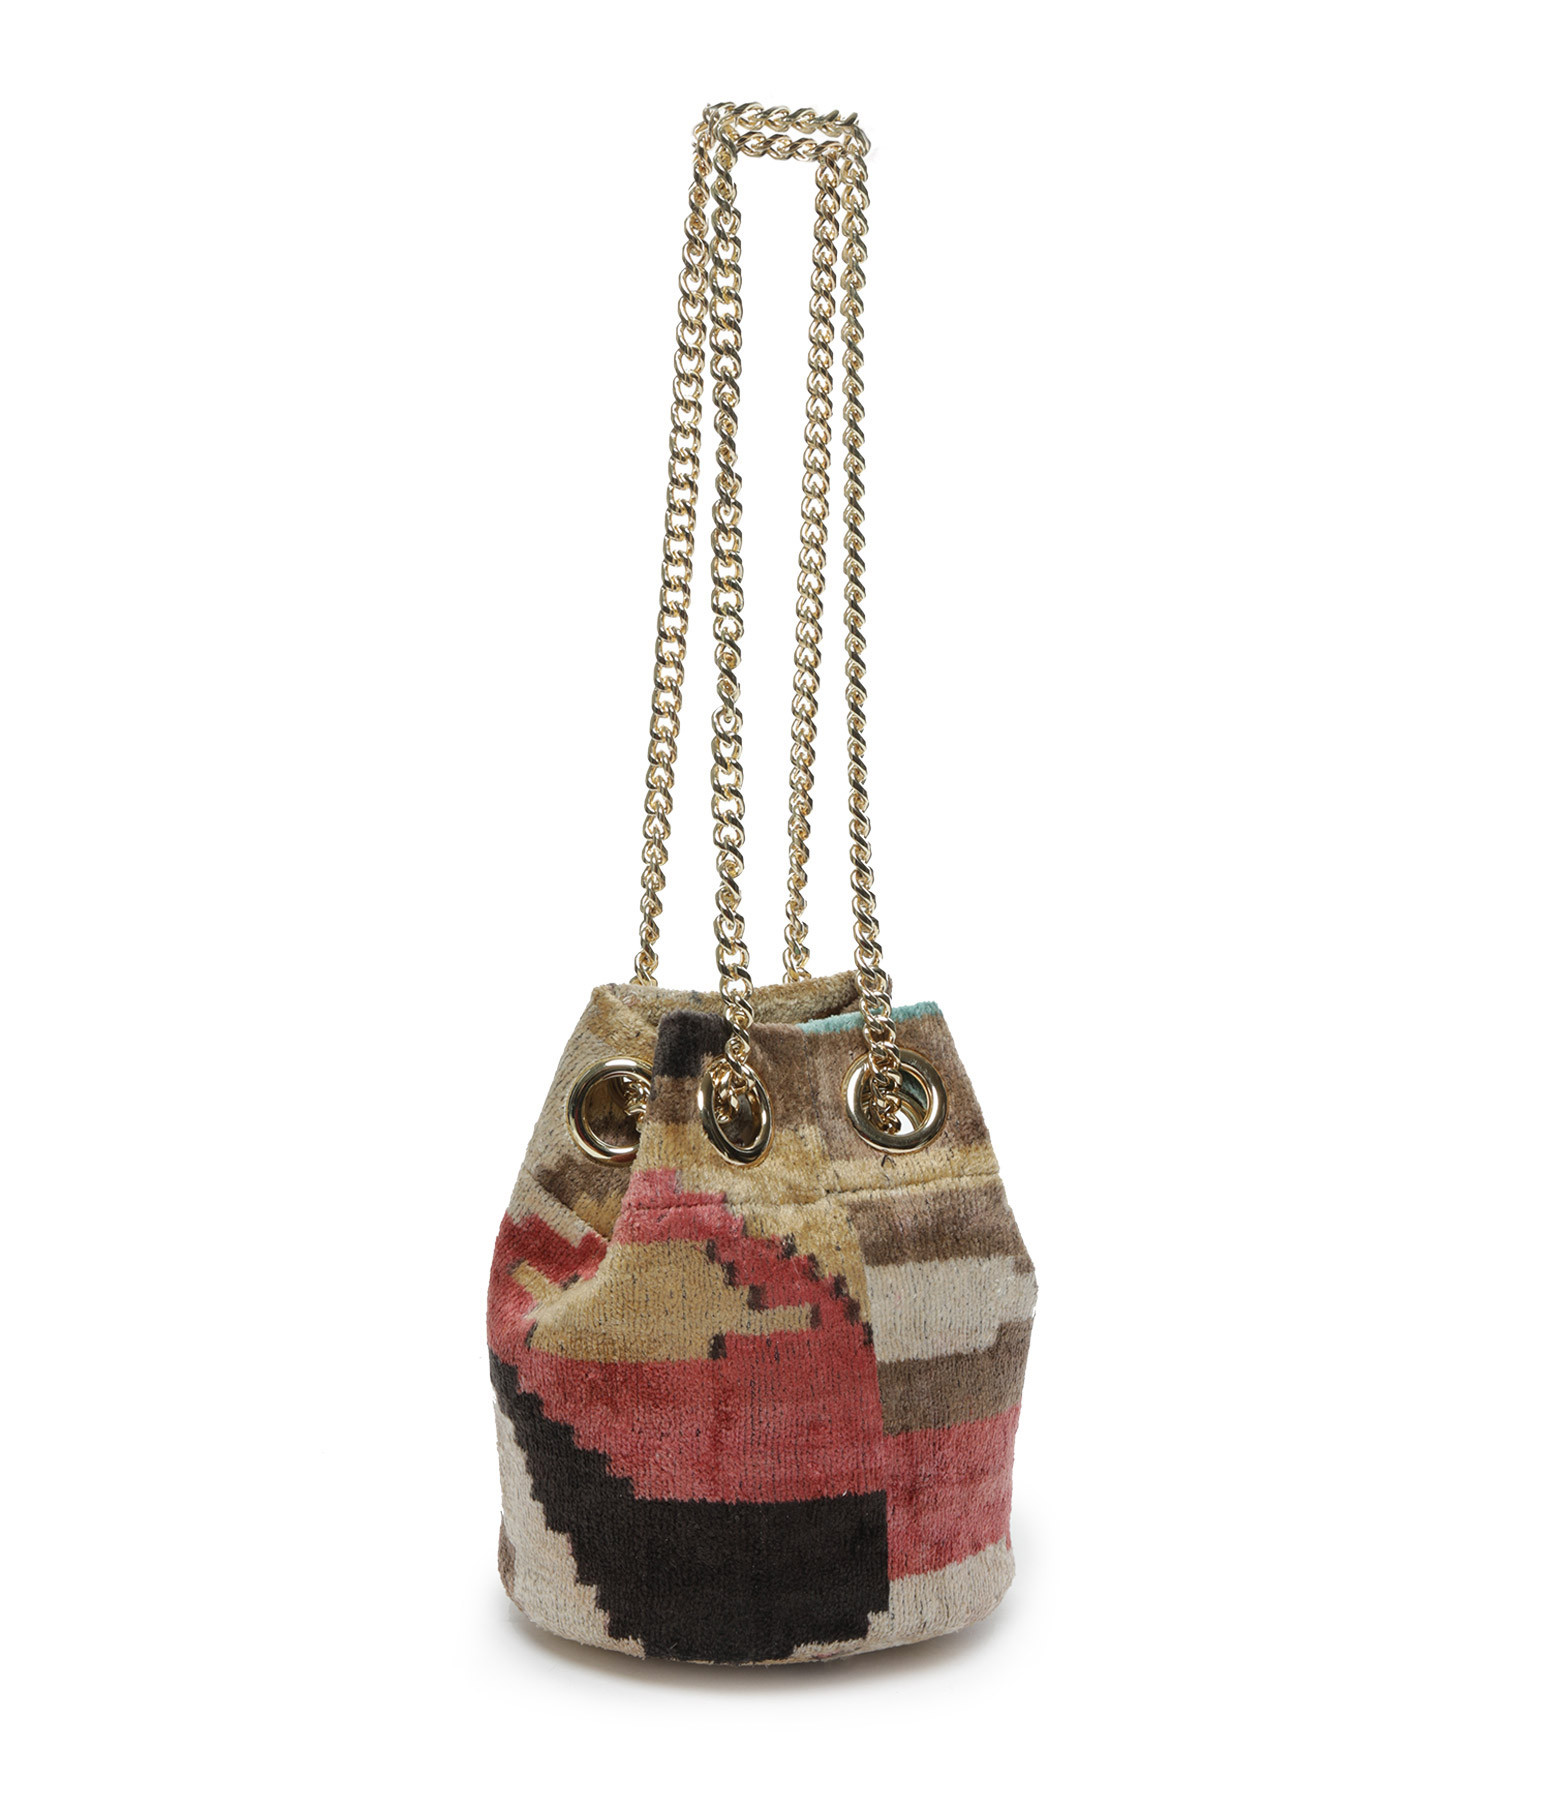 ROUGH STUDIOS - Sac Seau Gilby Soie Rose Multicolore